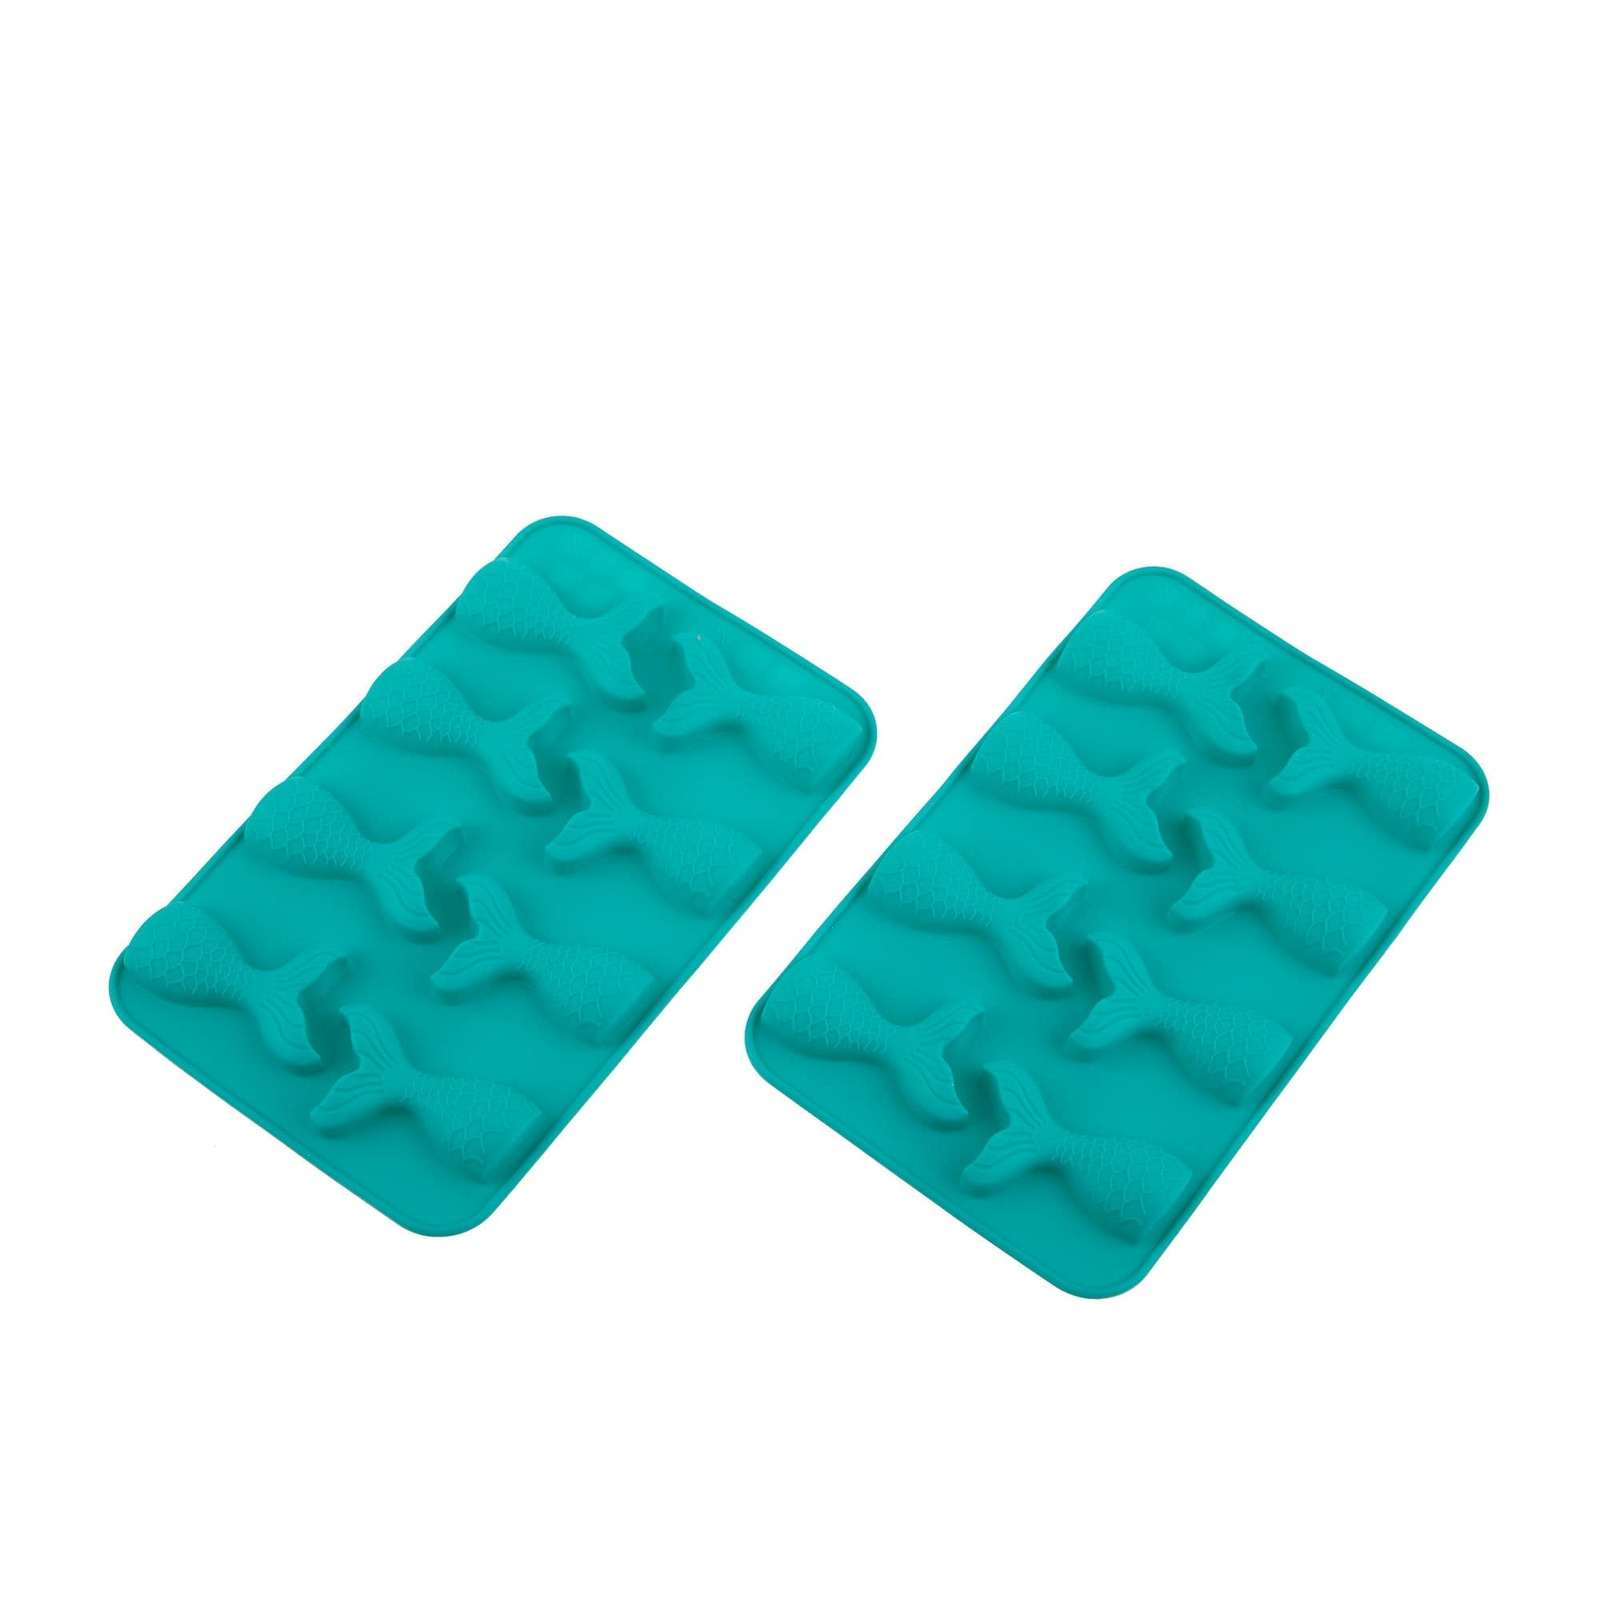 Daily Bake 2pc Mermaid Chocolate Mould Set 8 Cup Turquoise